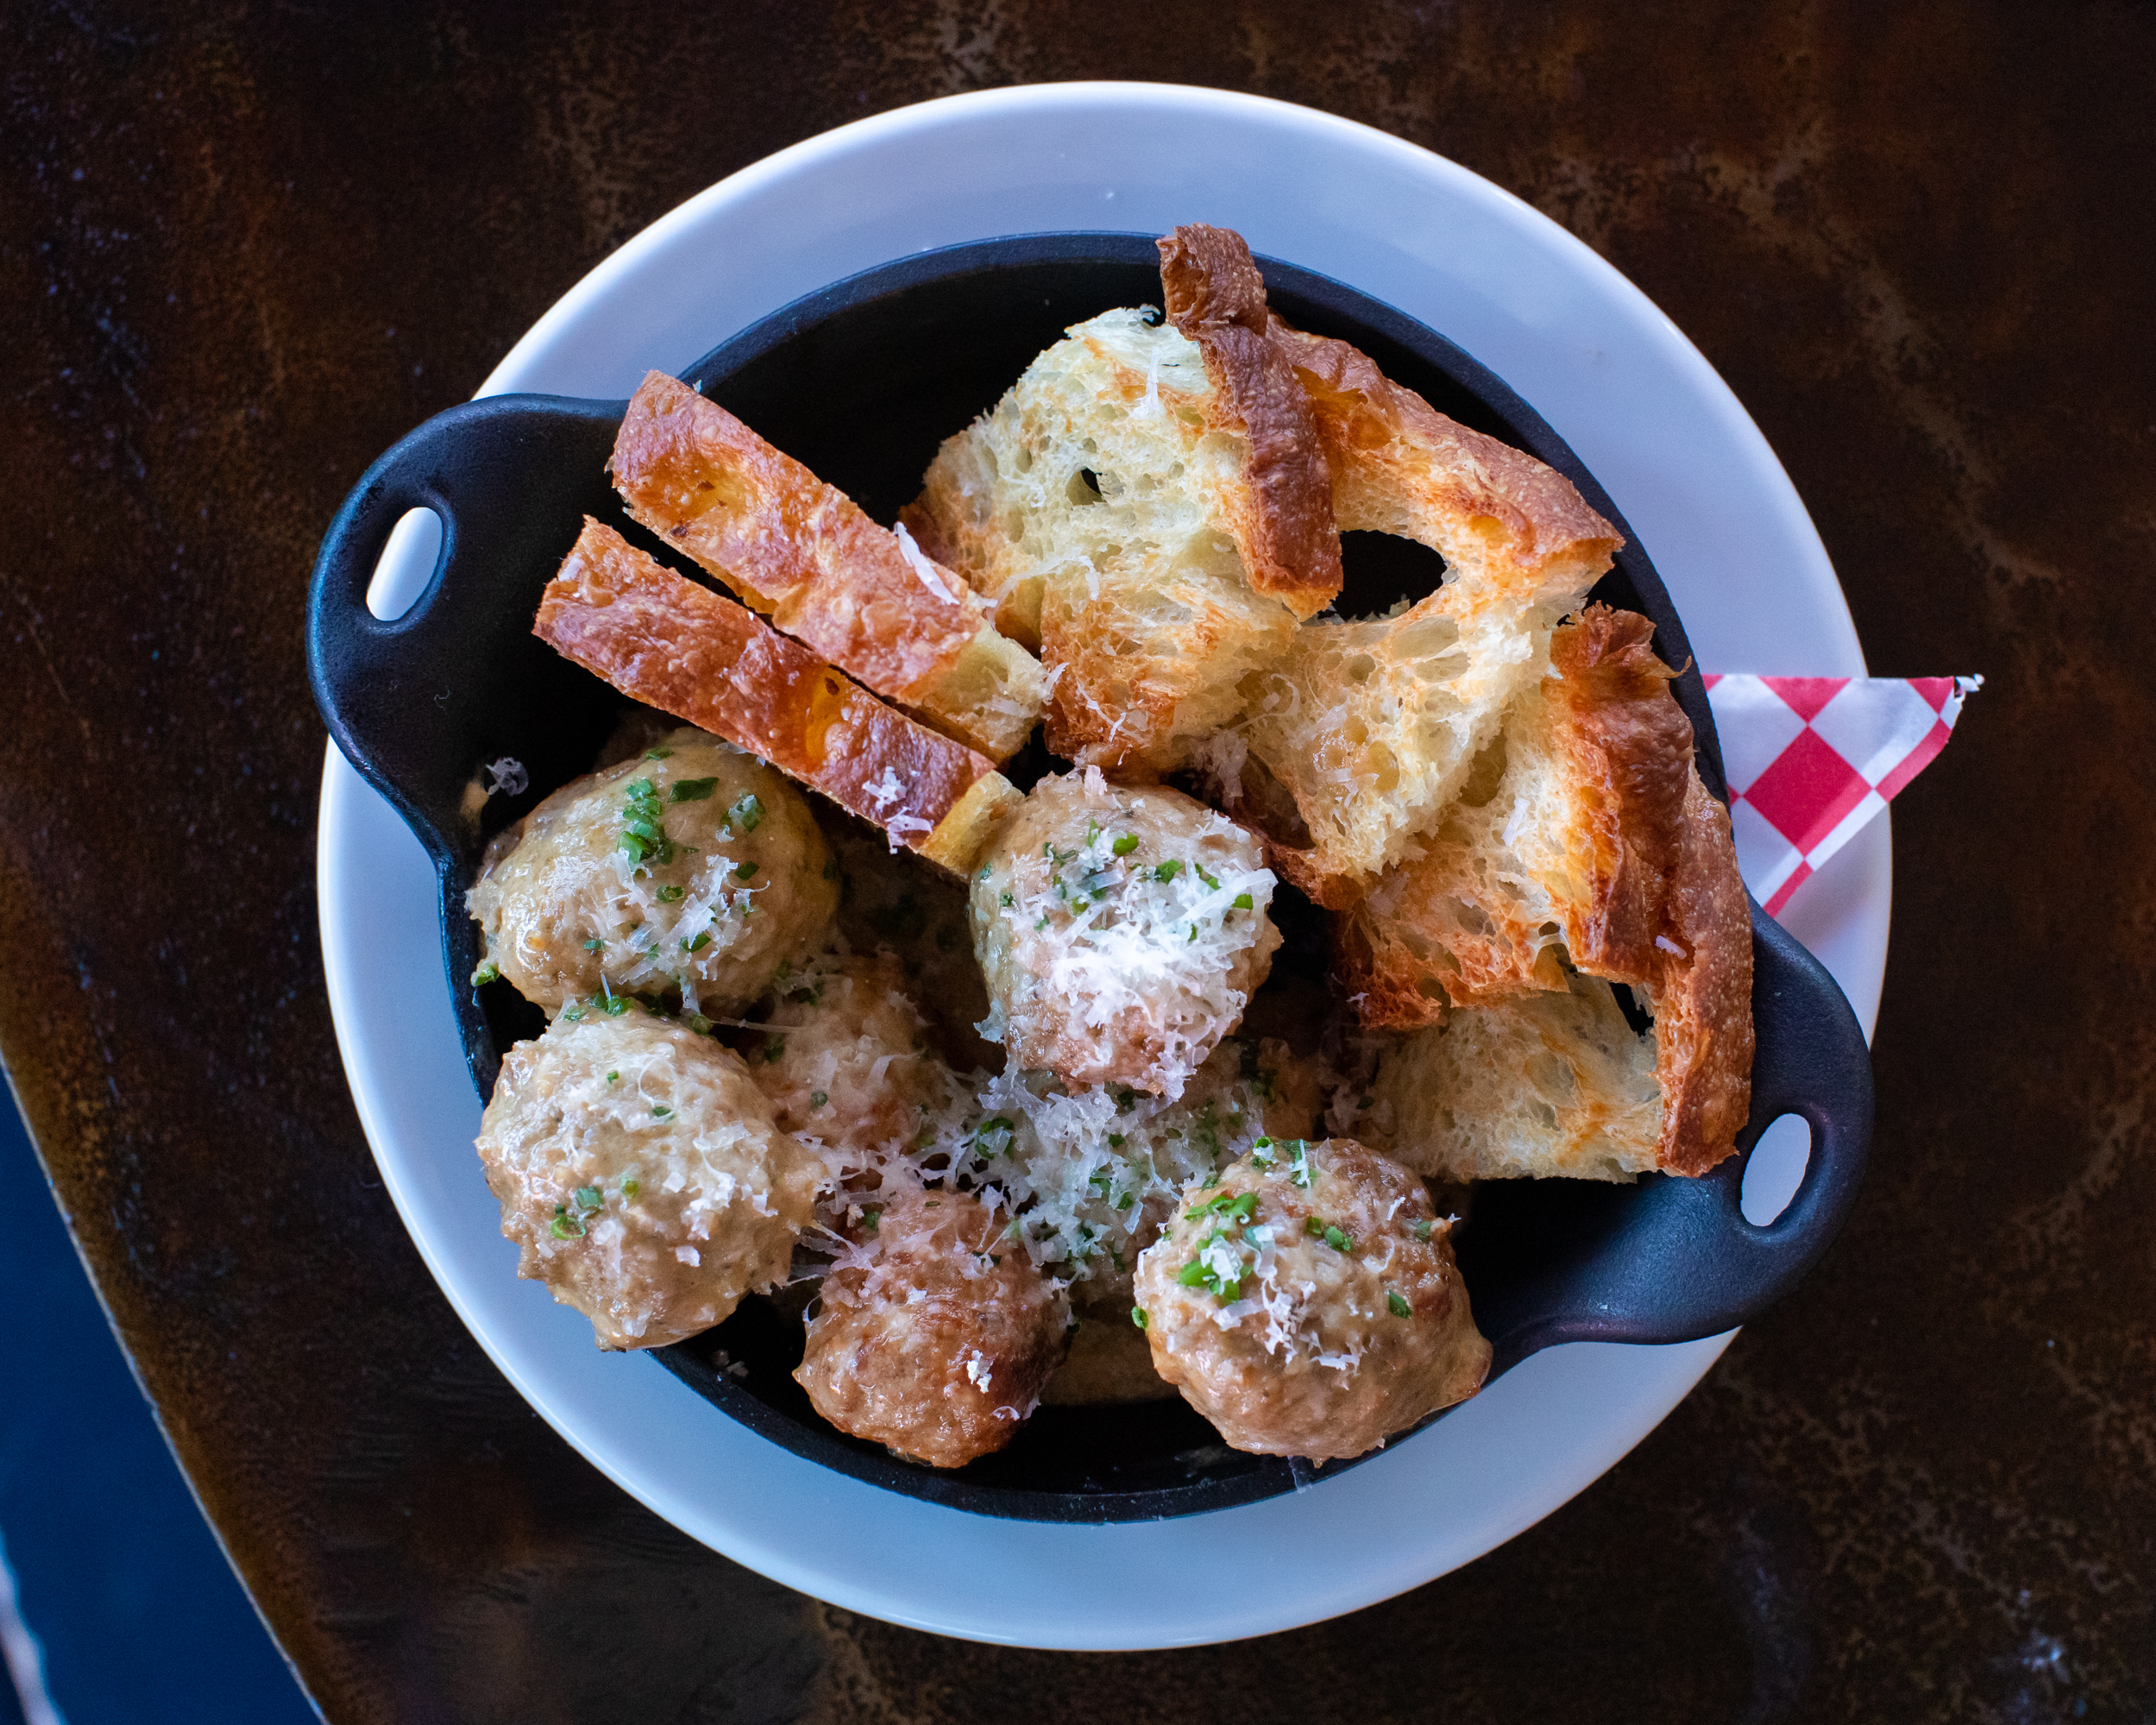 The meatballs dish from Uncle Nicky's